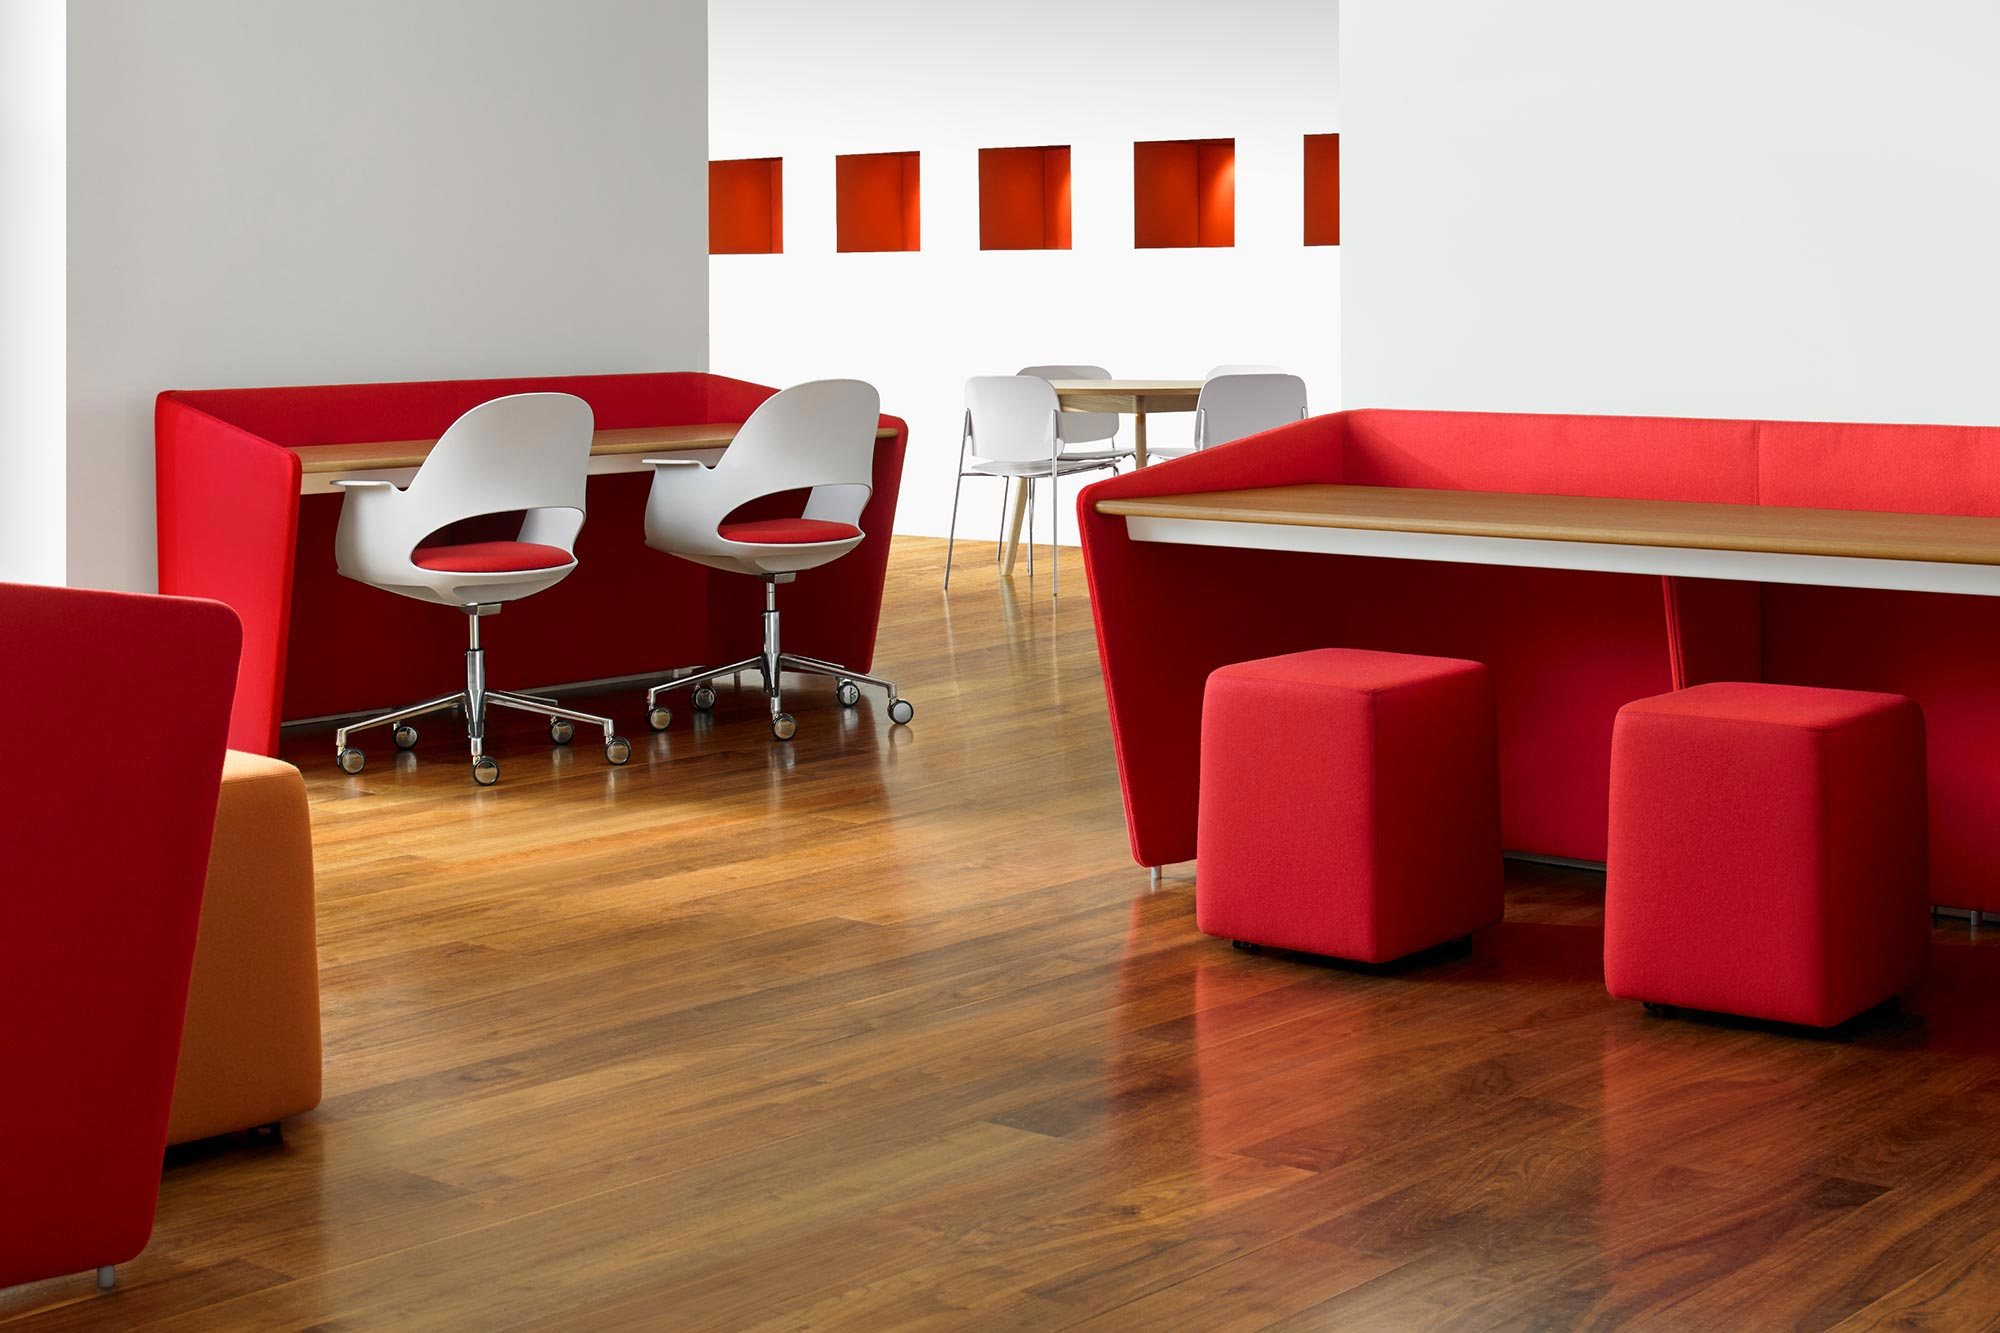 Office furniture continues to evolve with shapes, materials and colors that lighten and brighten the work and school environment.